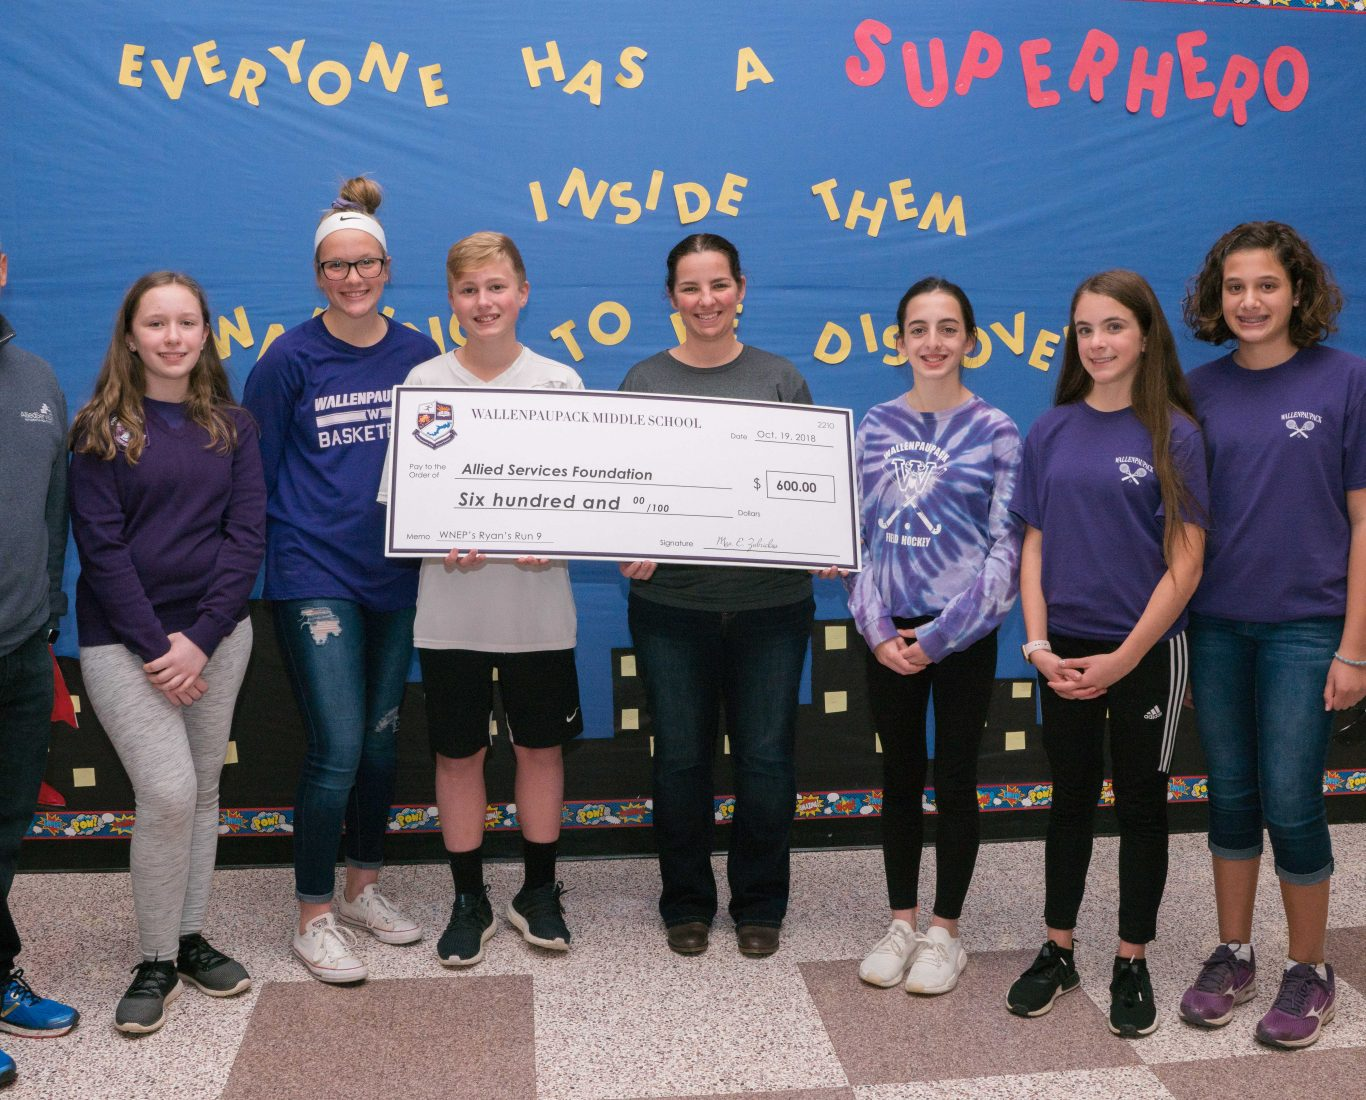 Wallenpaupack middle school students pose with large check